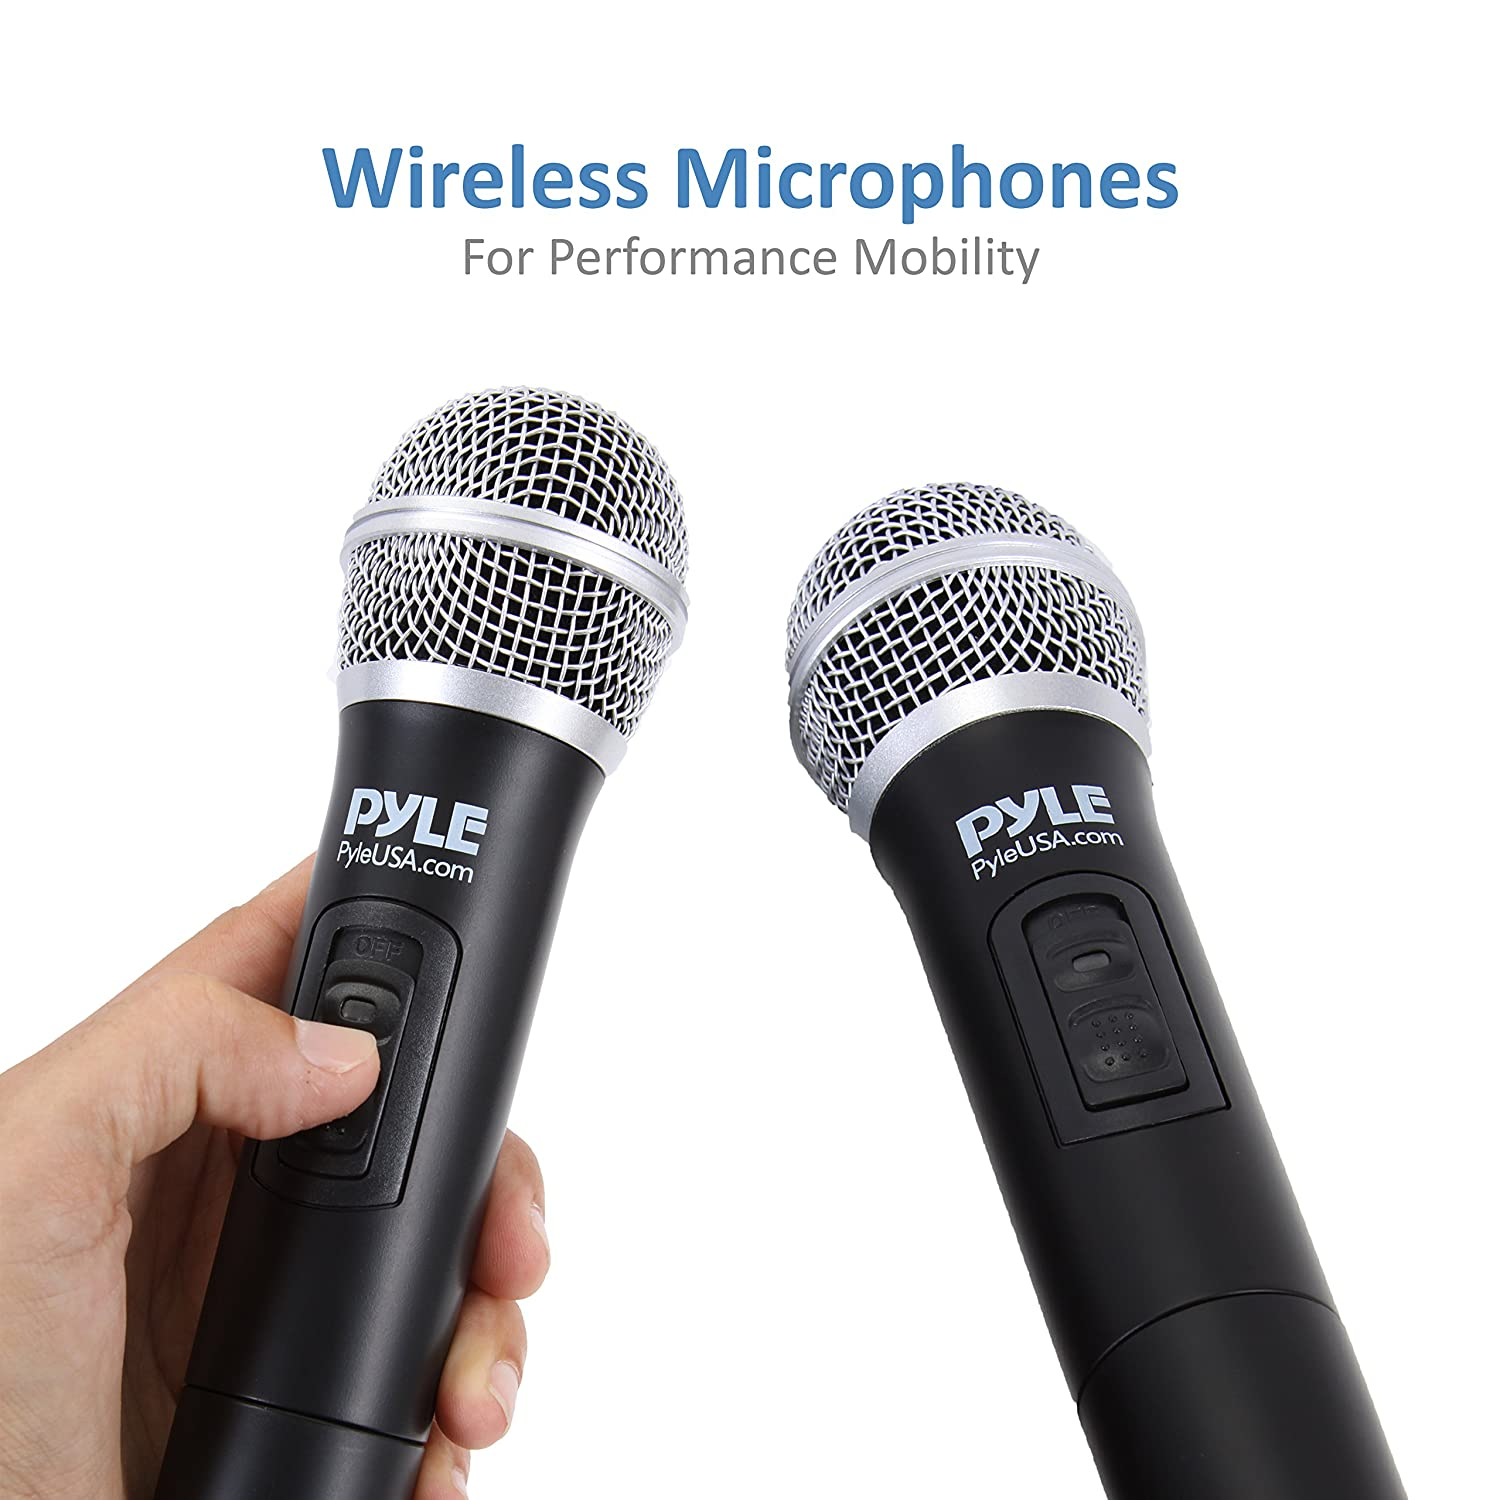 Pyle Portable Home Theater Karaoke Microphone Mixer Mc 44 Multi Function Schematic Wiring Diagram System Set W Dual Uhf Wireless Mic Hdmi Aux Audio Play Via Device Speaker Works With